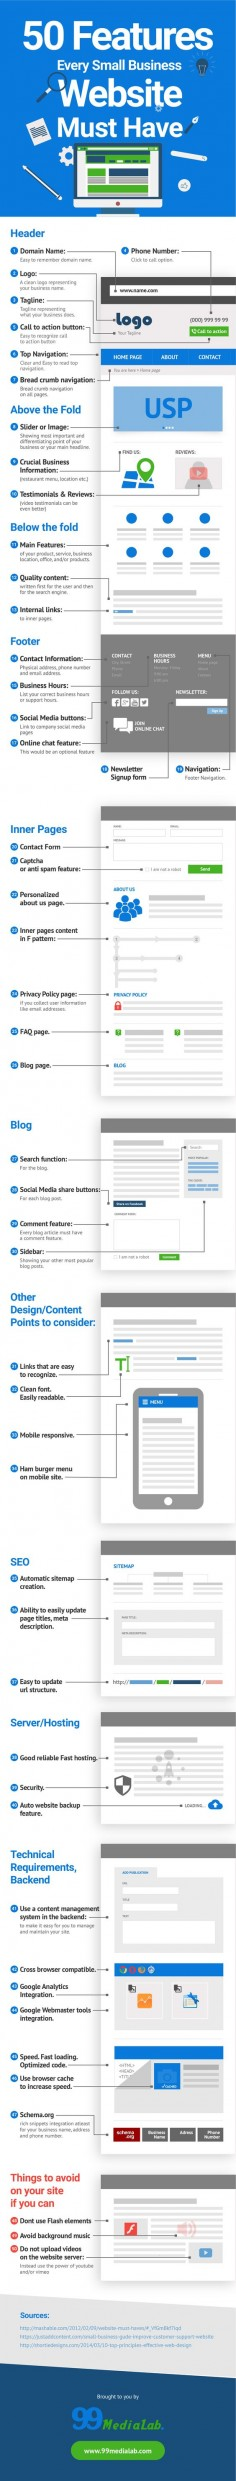 50 Features Small Business Websites Must Have [Infographic]